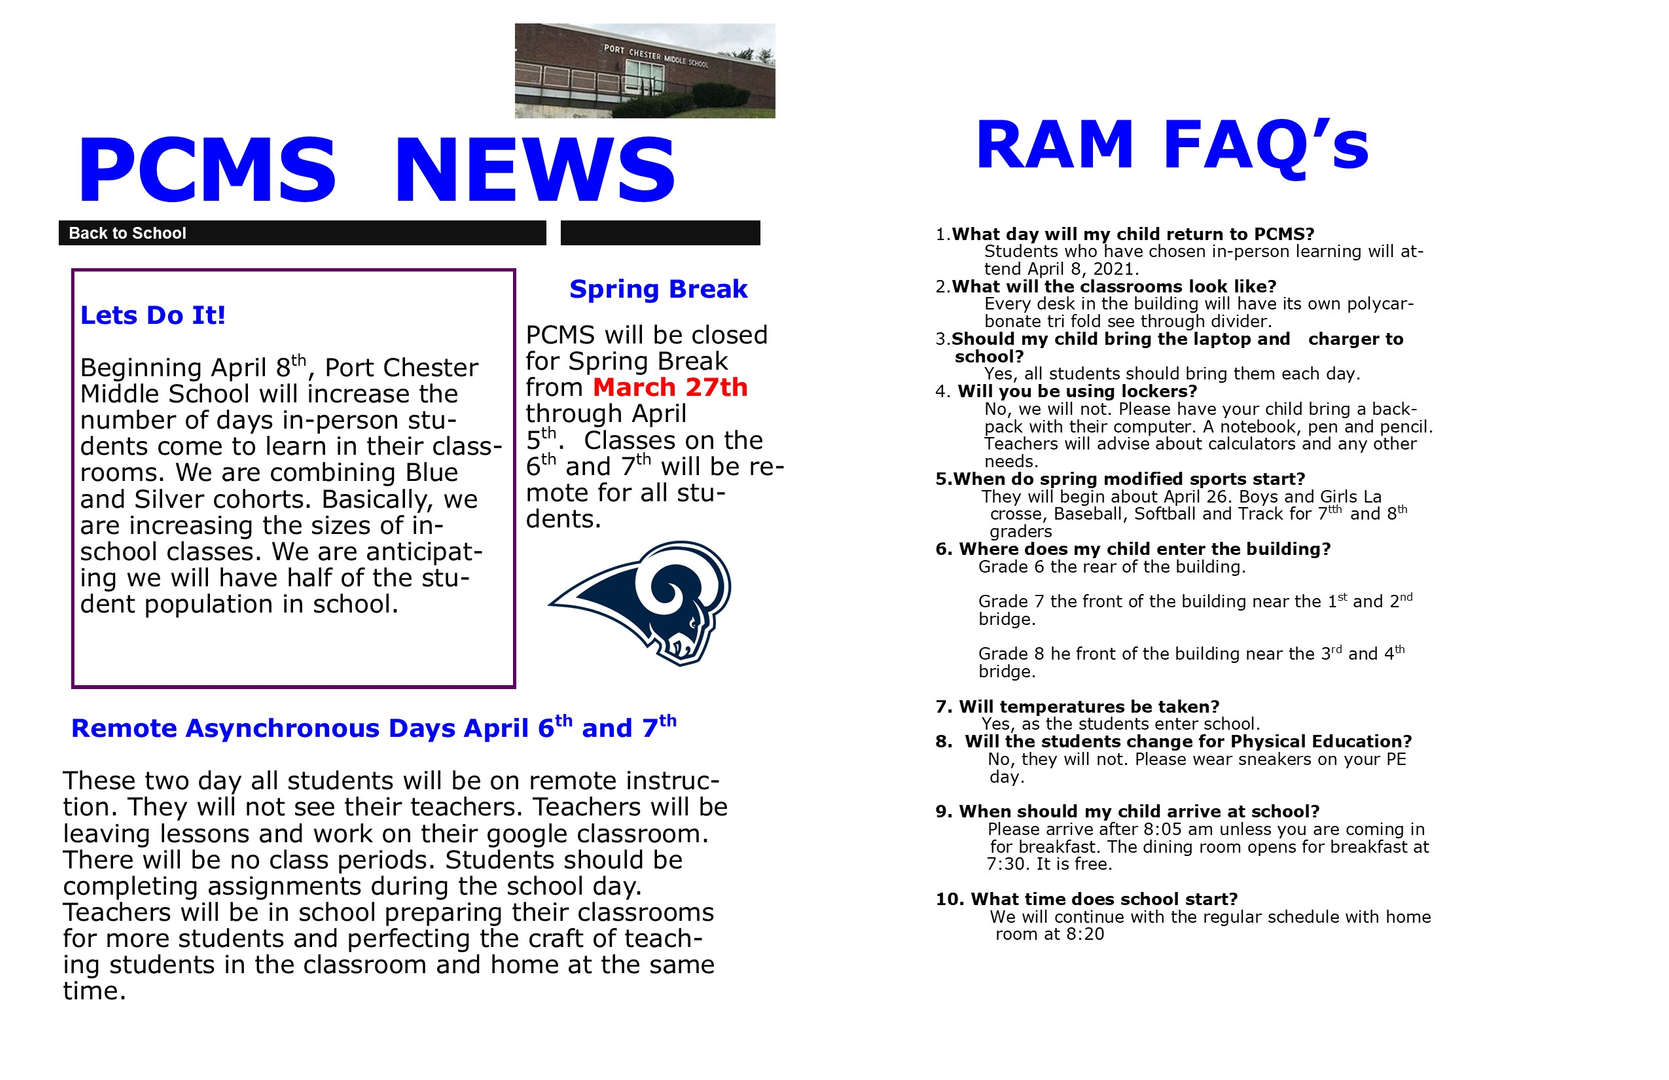 Flyer called PCMS News regarding school reopening for in-person on April 8, 2021